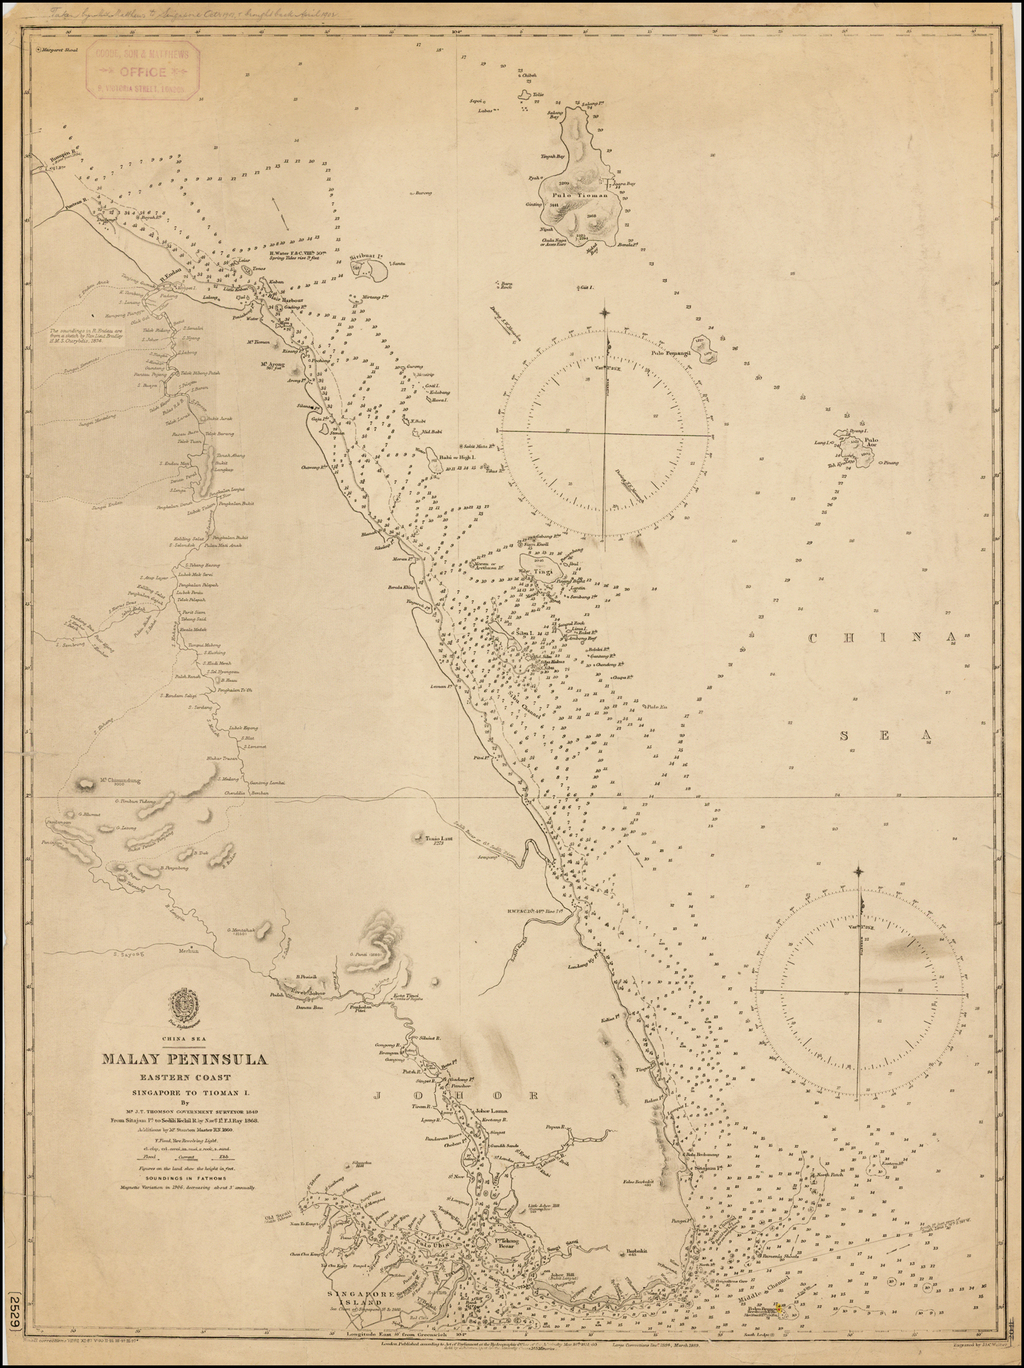 Malay Peninsula Eastern Coast.  Singapore to Tioman I.  By Mr. J. T. Thomson, Government Surveyor, 1849 . . . Additions by Mr Stanton, Master RN, 1860 By British Admiralty